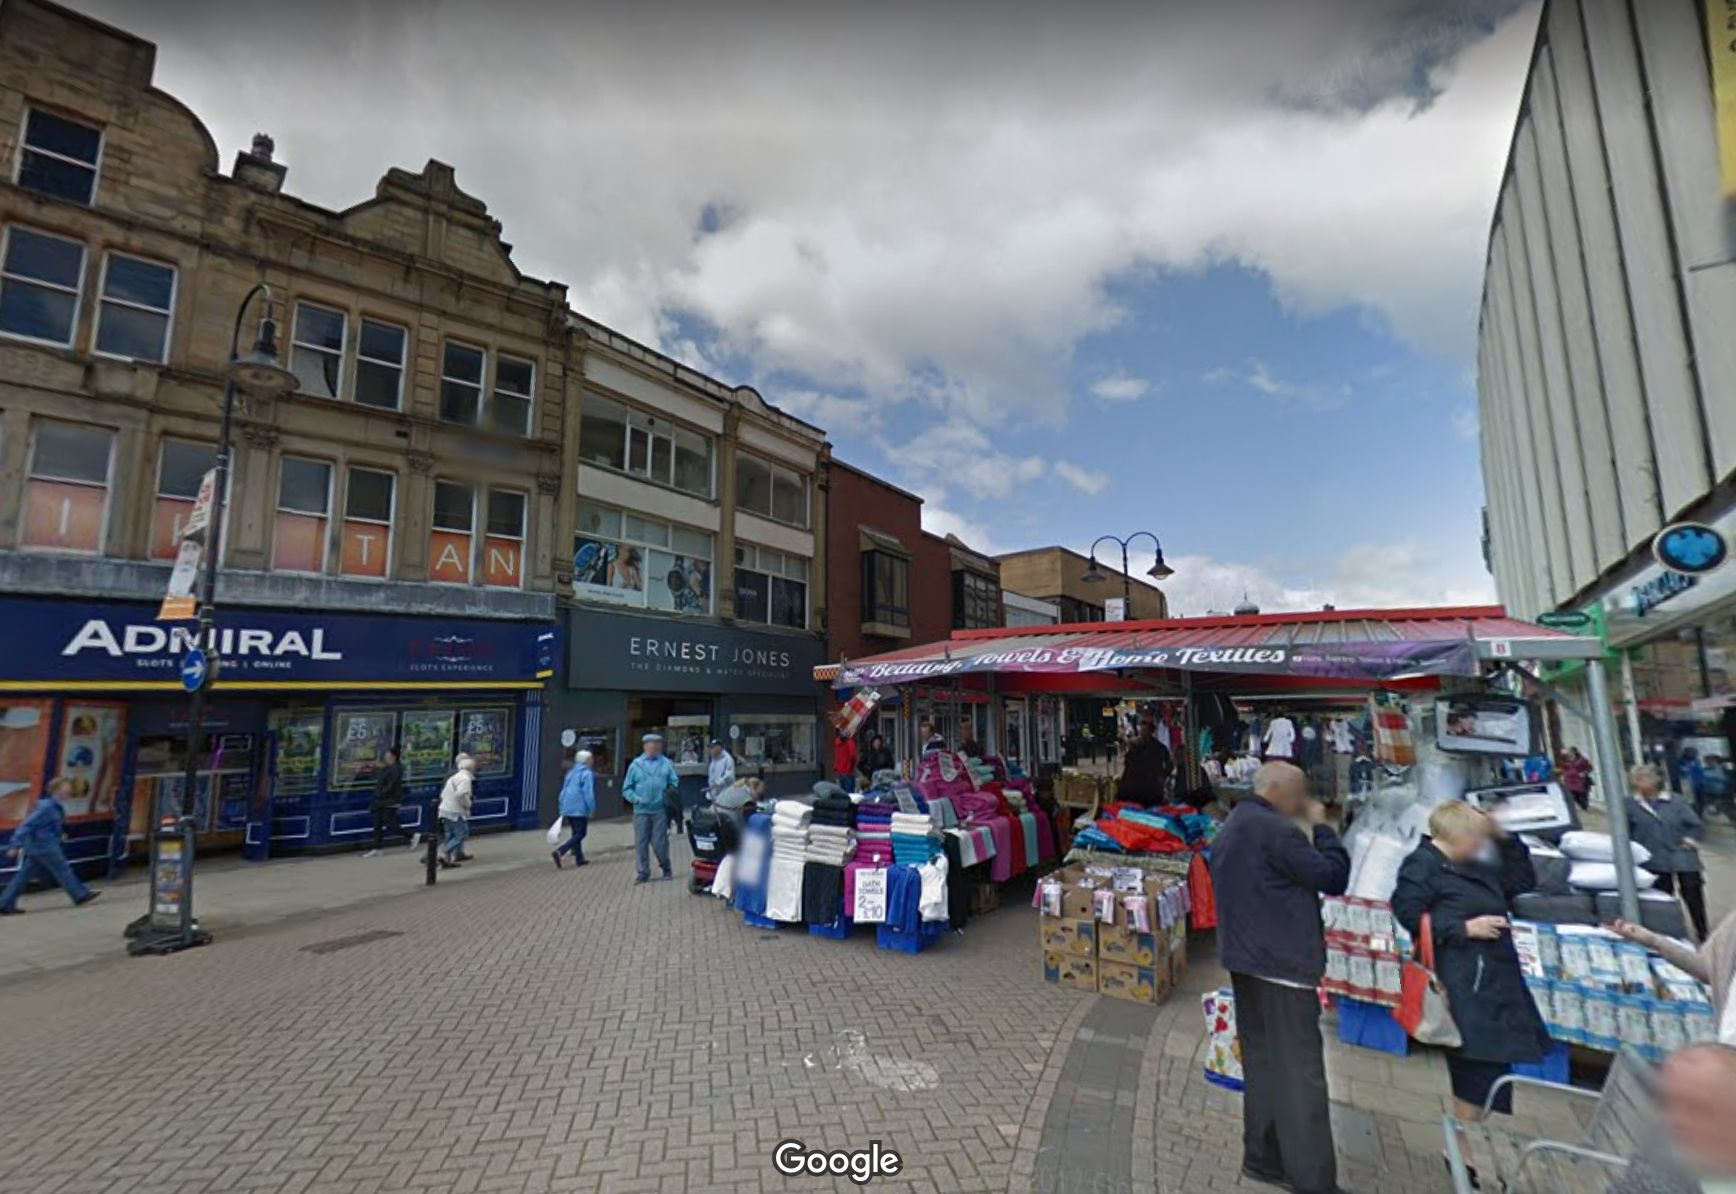 Barnsley stabbing: Arrest after man attacked in town centre